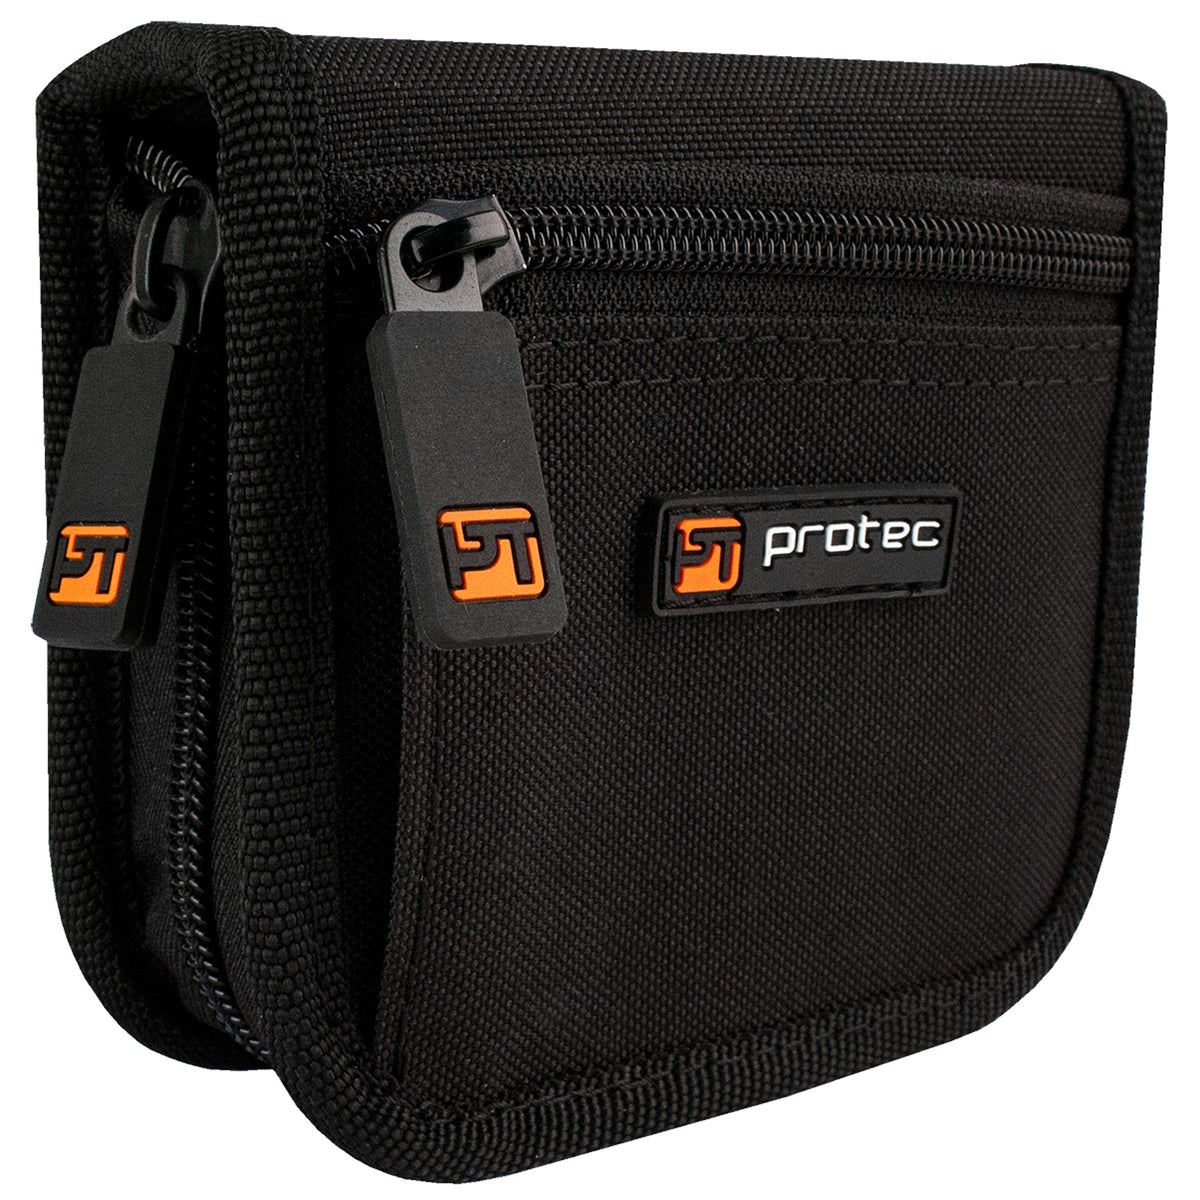 PROTEC Large Brass 2 Piece Pouch w/ Zipper Closure